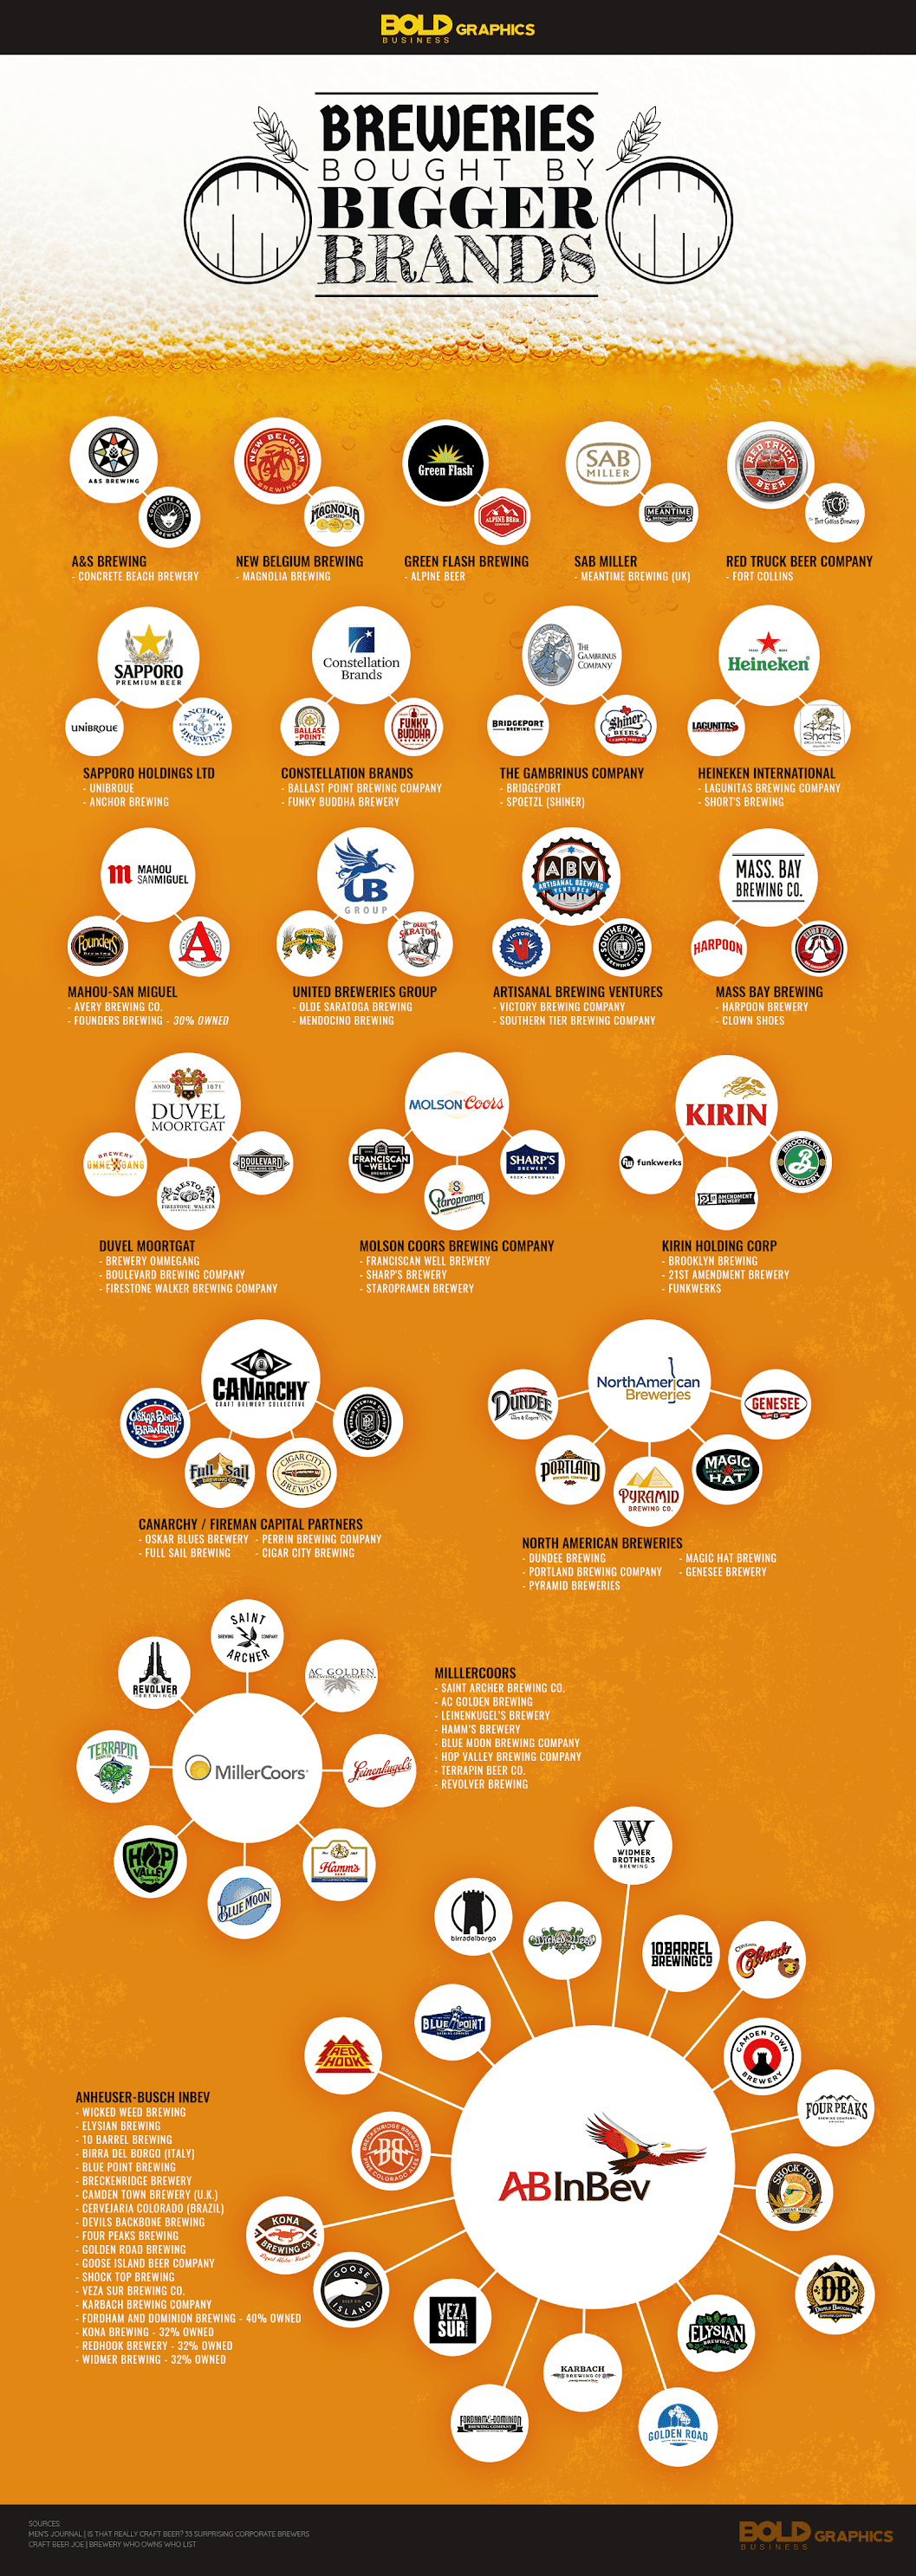 breweries,breweries infographic,breweries list,Breweries Bought By Bigger Brands